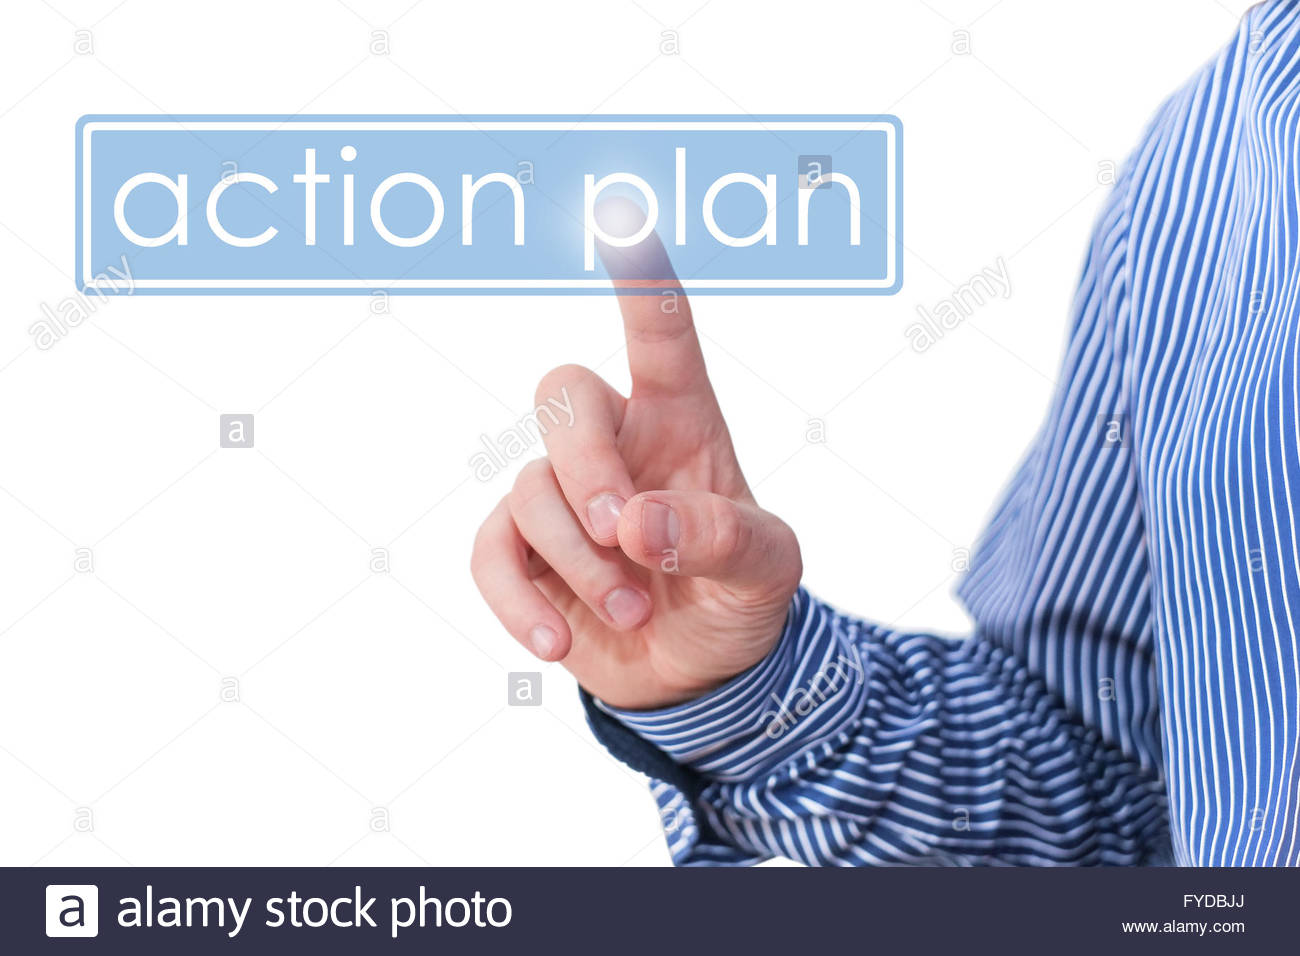 Plan d'action - concept d'affaires Photo Stock